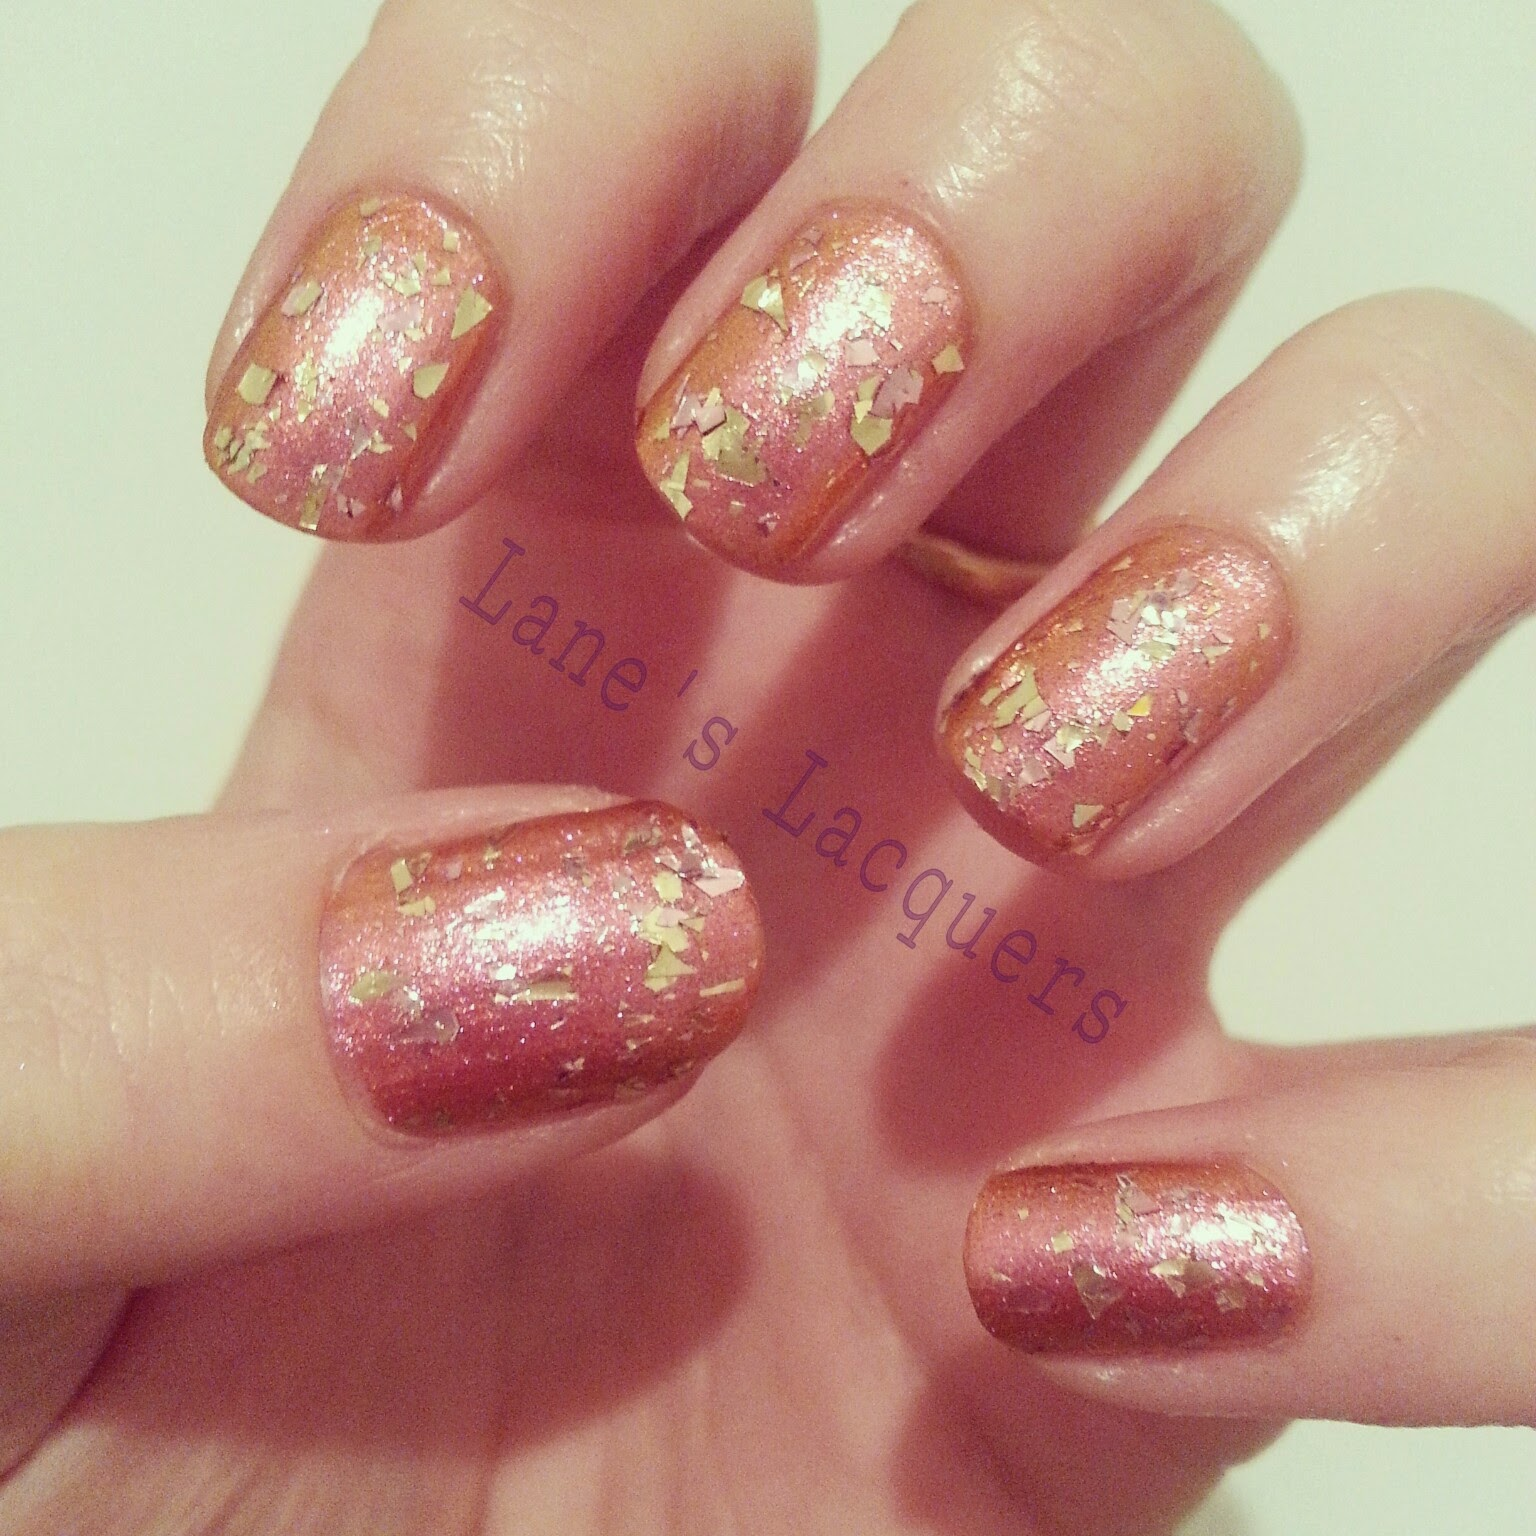 barry-m-aquarium-pink-and-glitter-aqnp2-swatch-manicure